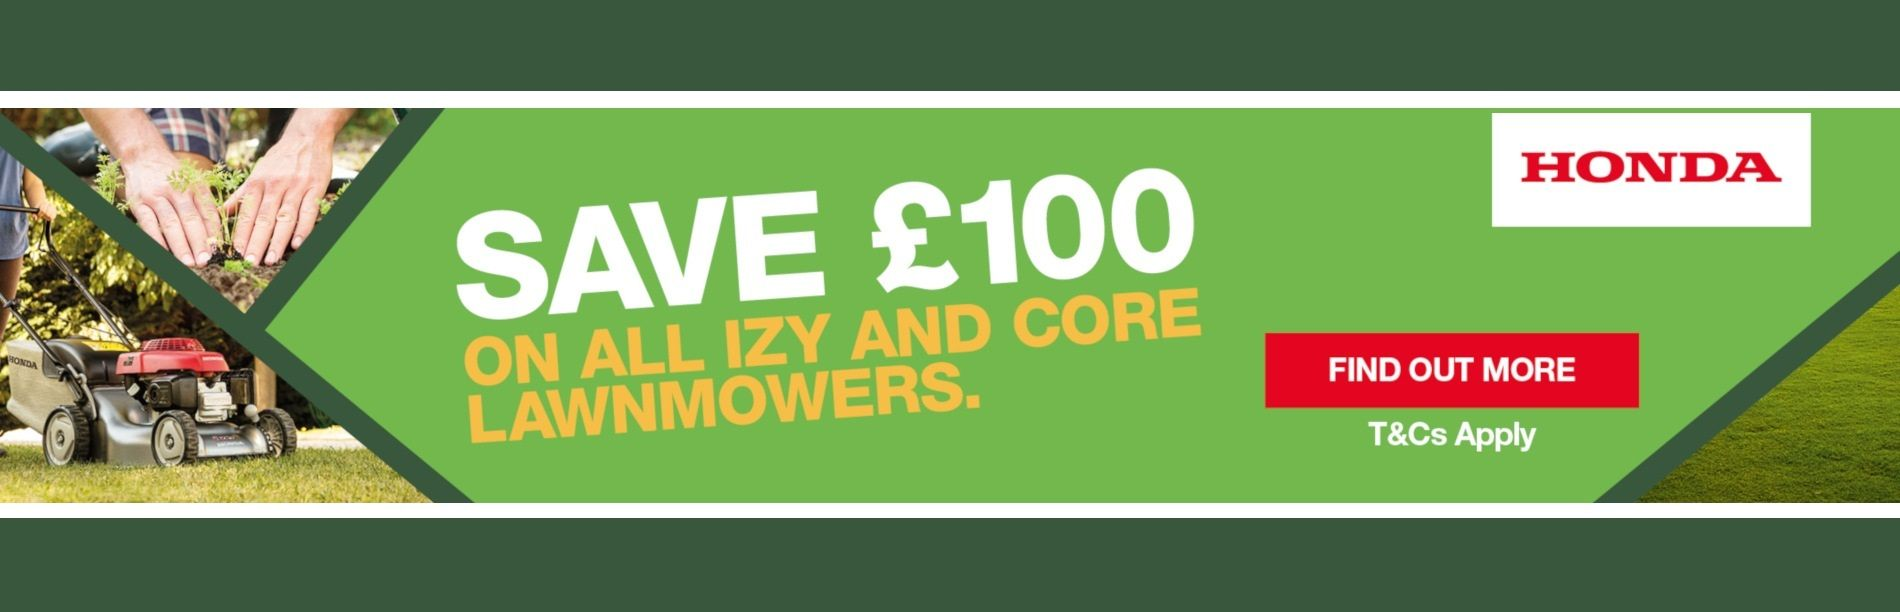 HONDA SAVE £100 ON ALL IZY & CORE LAWNMOWERS